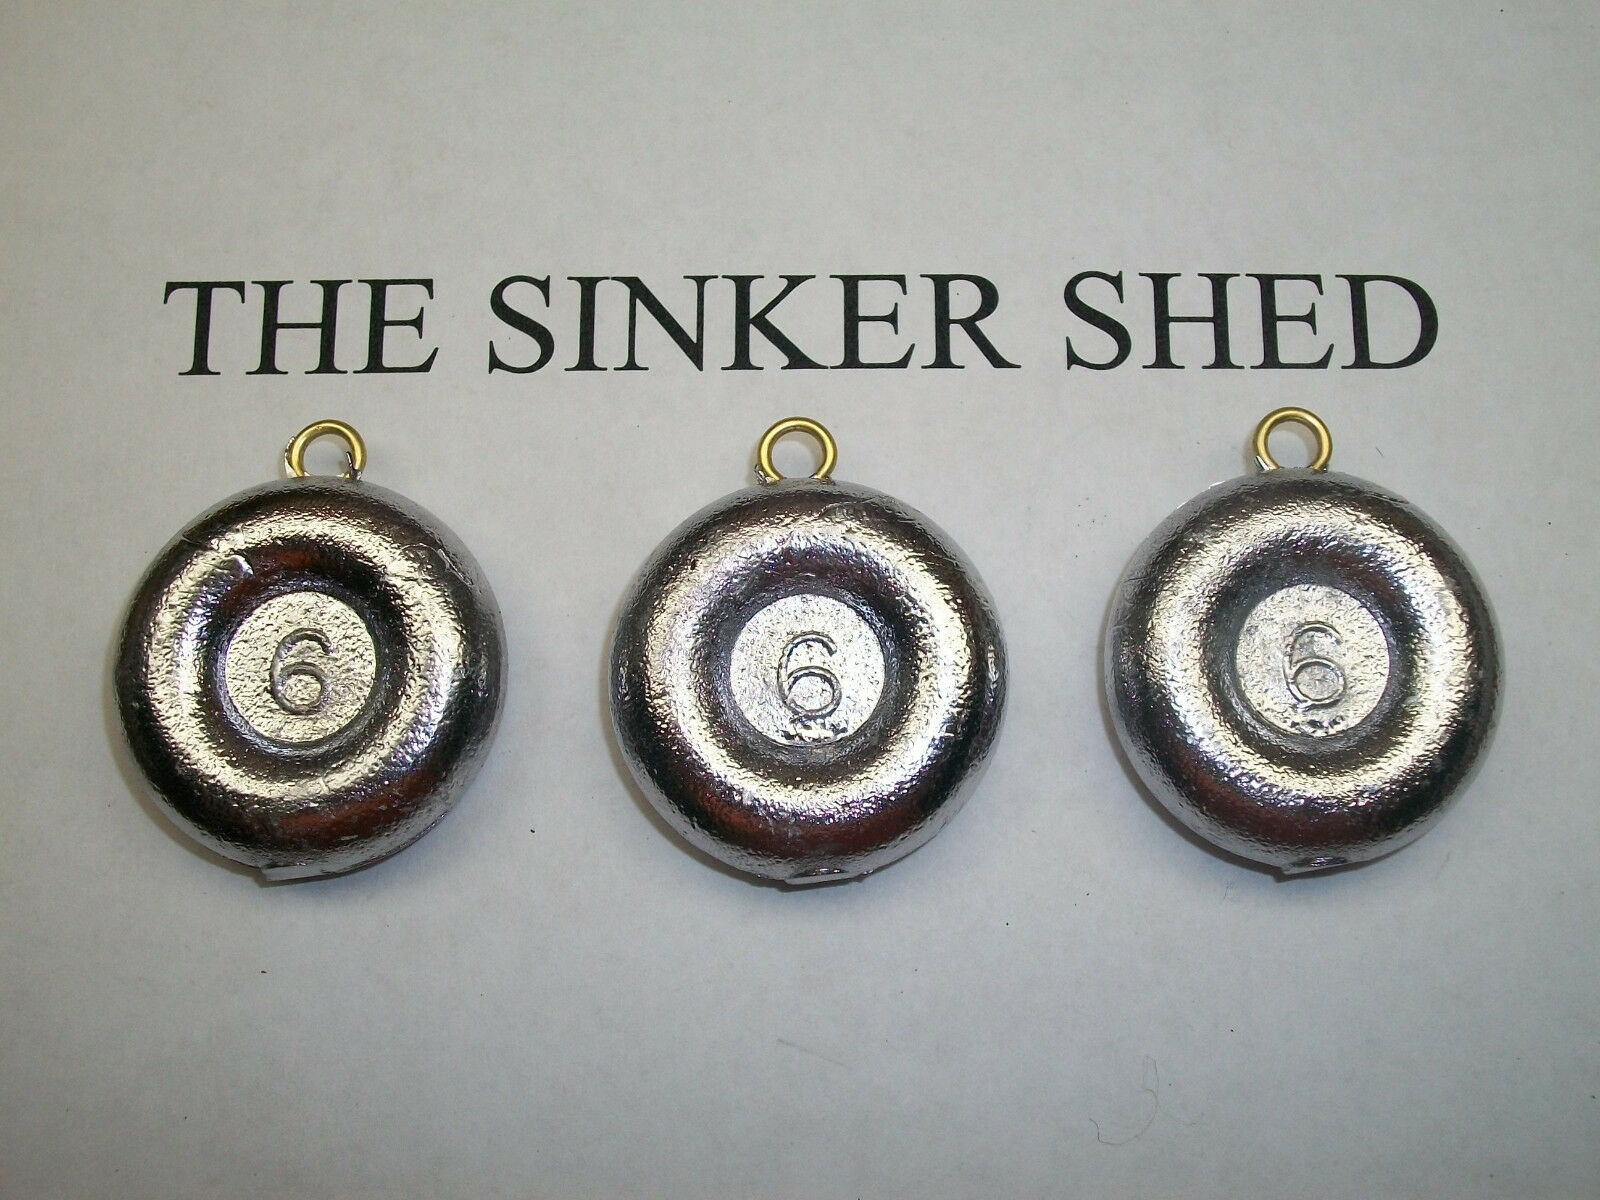 6oz river coin sinkers    decoy weight - quantity of 6 12 25 50 100 FREE SHIPPING  more order